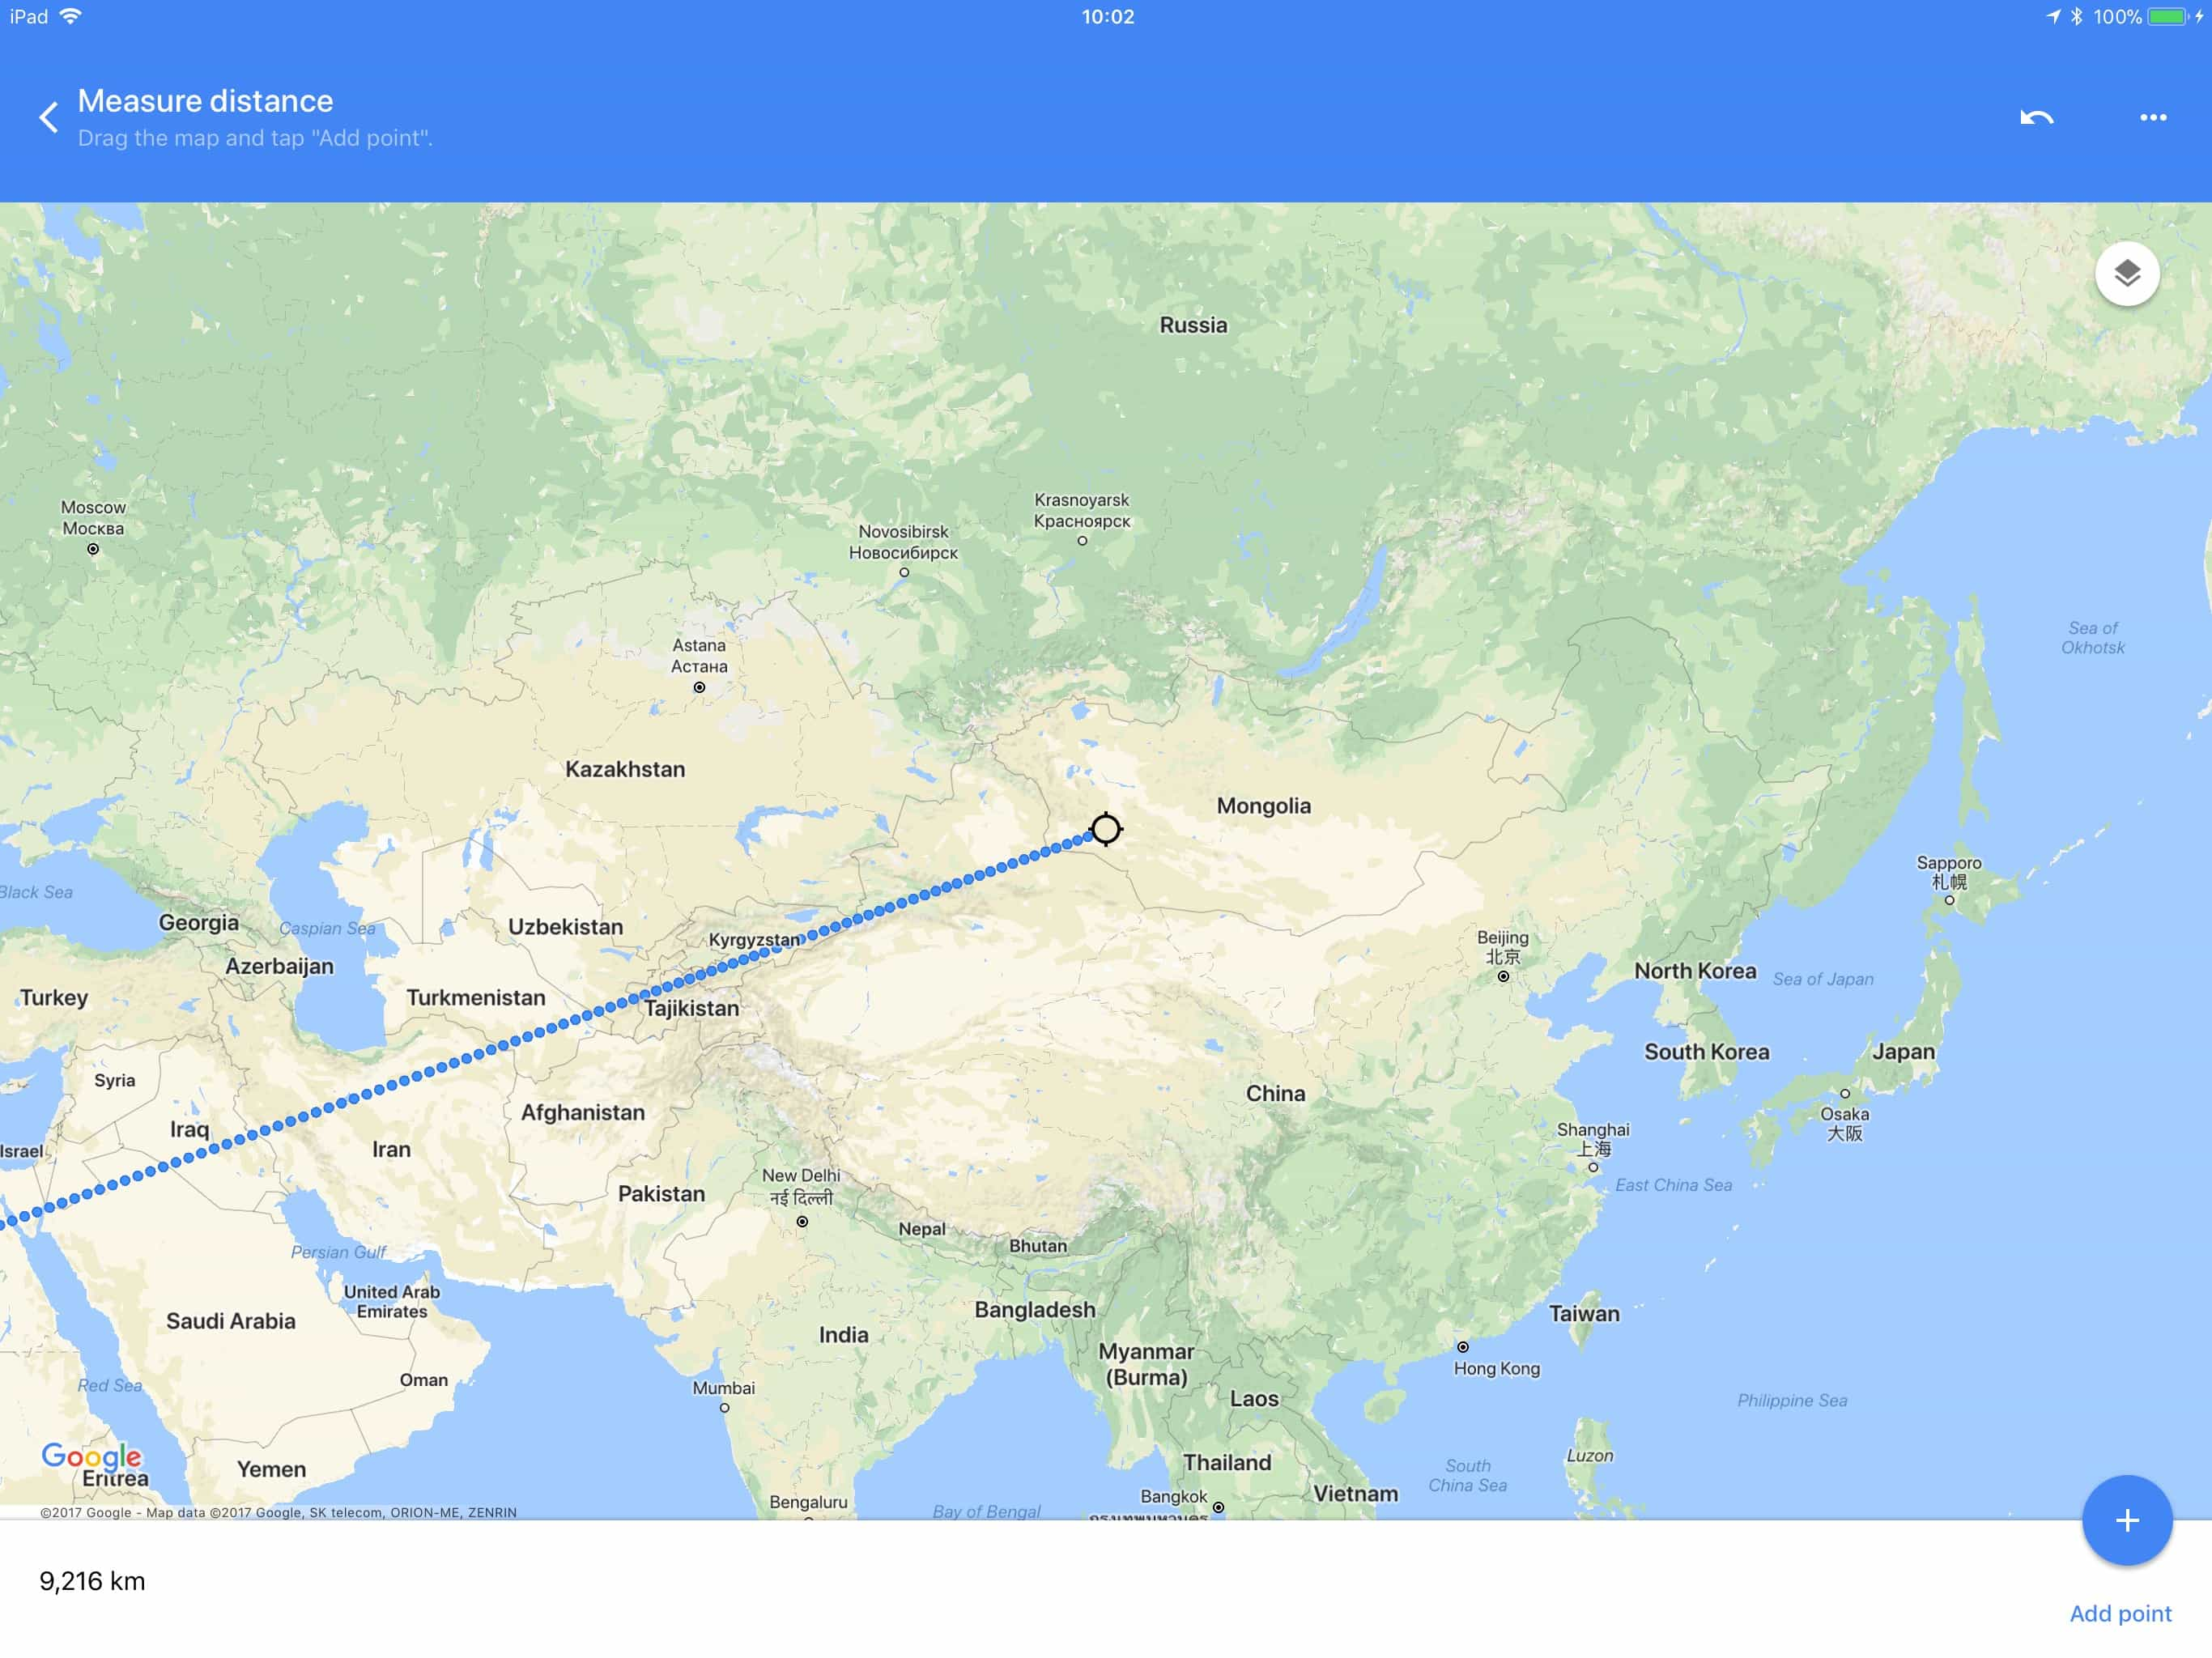 How to measure distance in Google Maps for iOS | Cult of Mac Google Mapping Tool on google calendars, google sites, google training, google clip art, google articles, google flights, google social media, google maps, map tools, google sun, mind-mapping tools, google search engines, google spreadsheets,